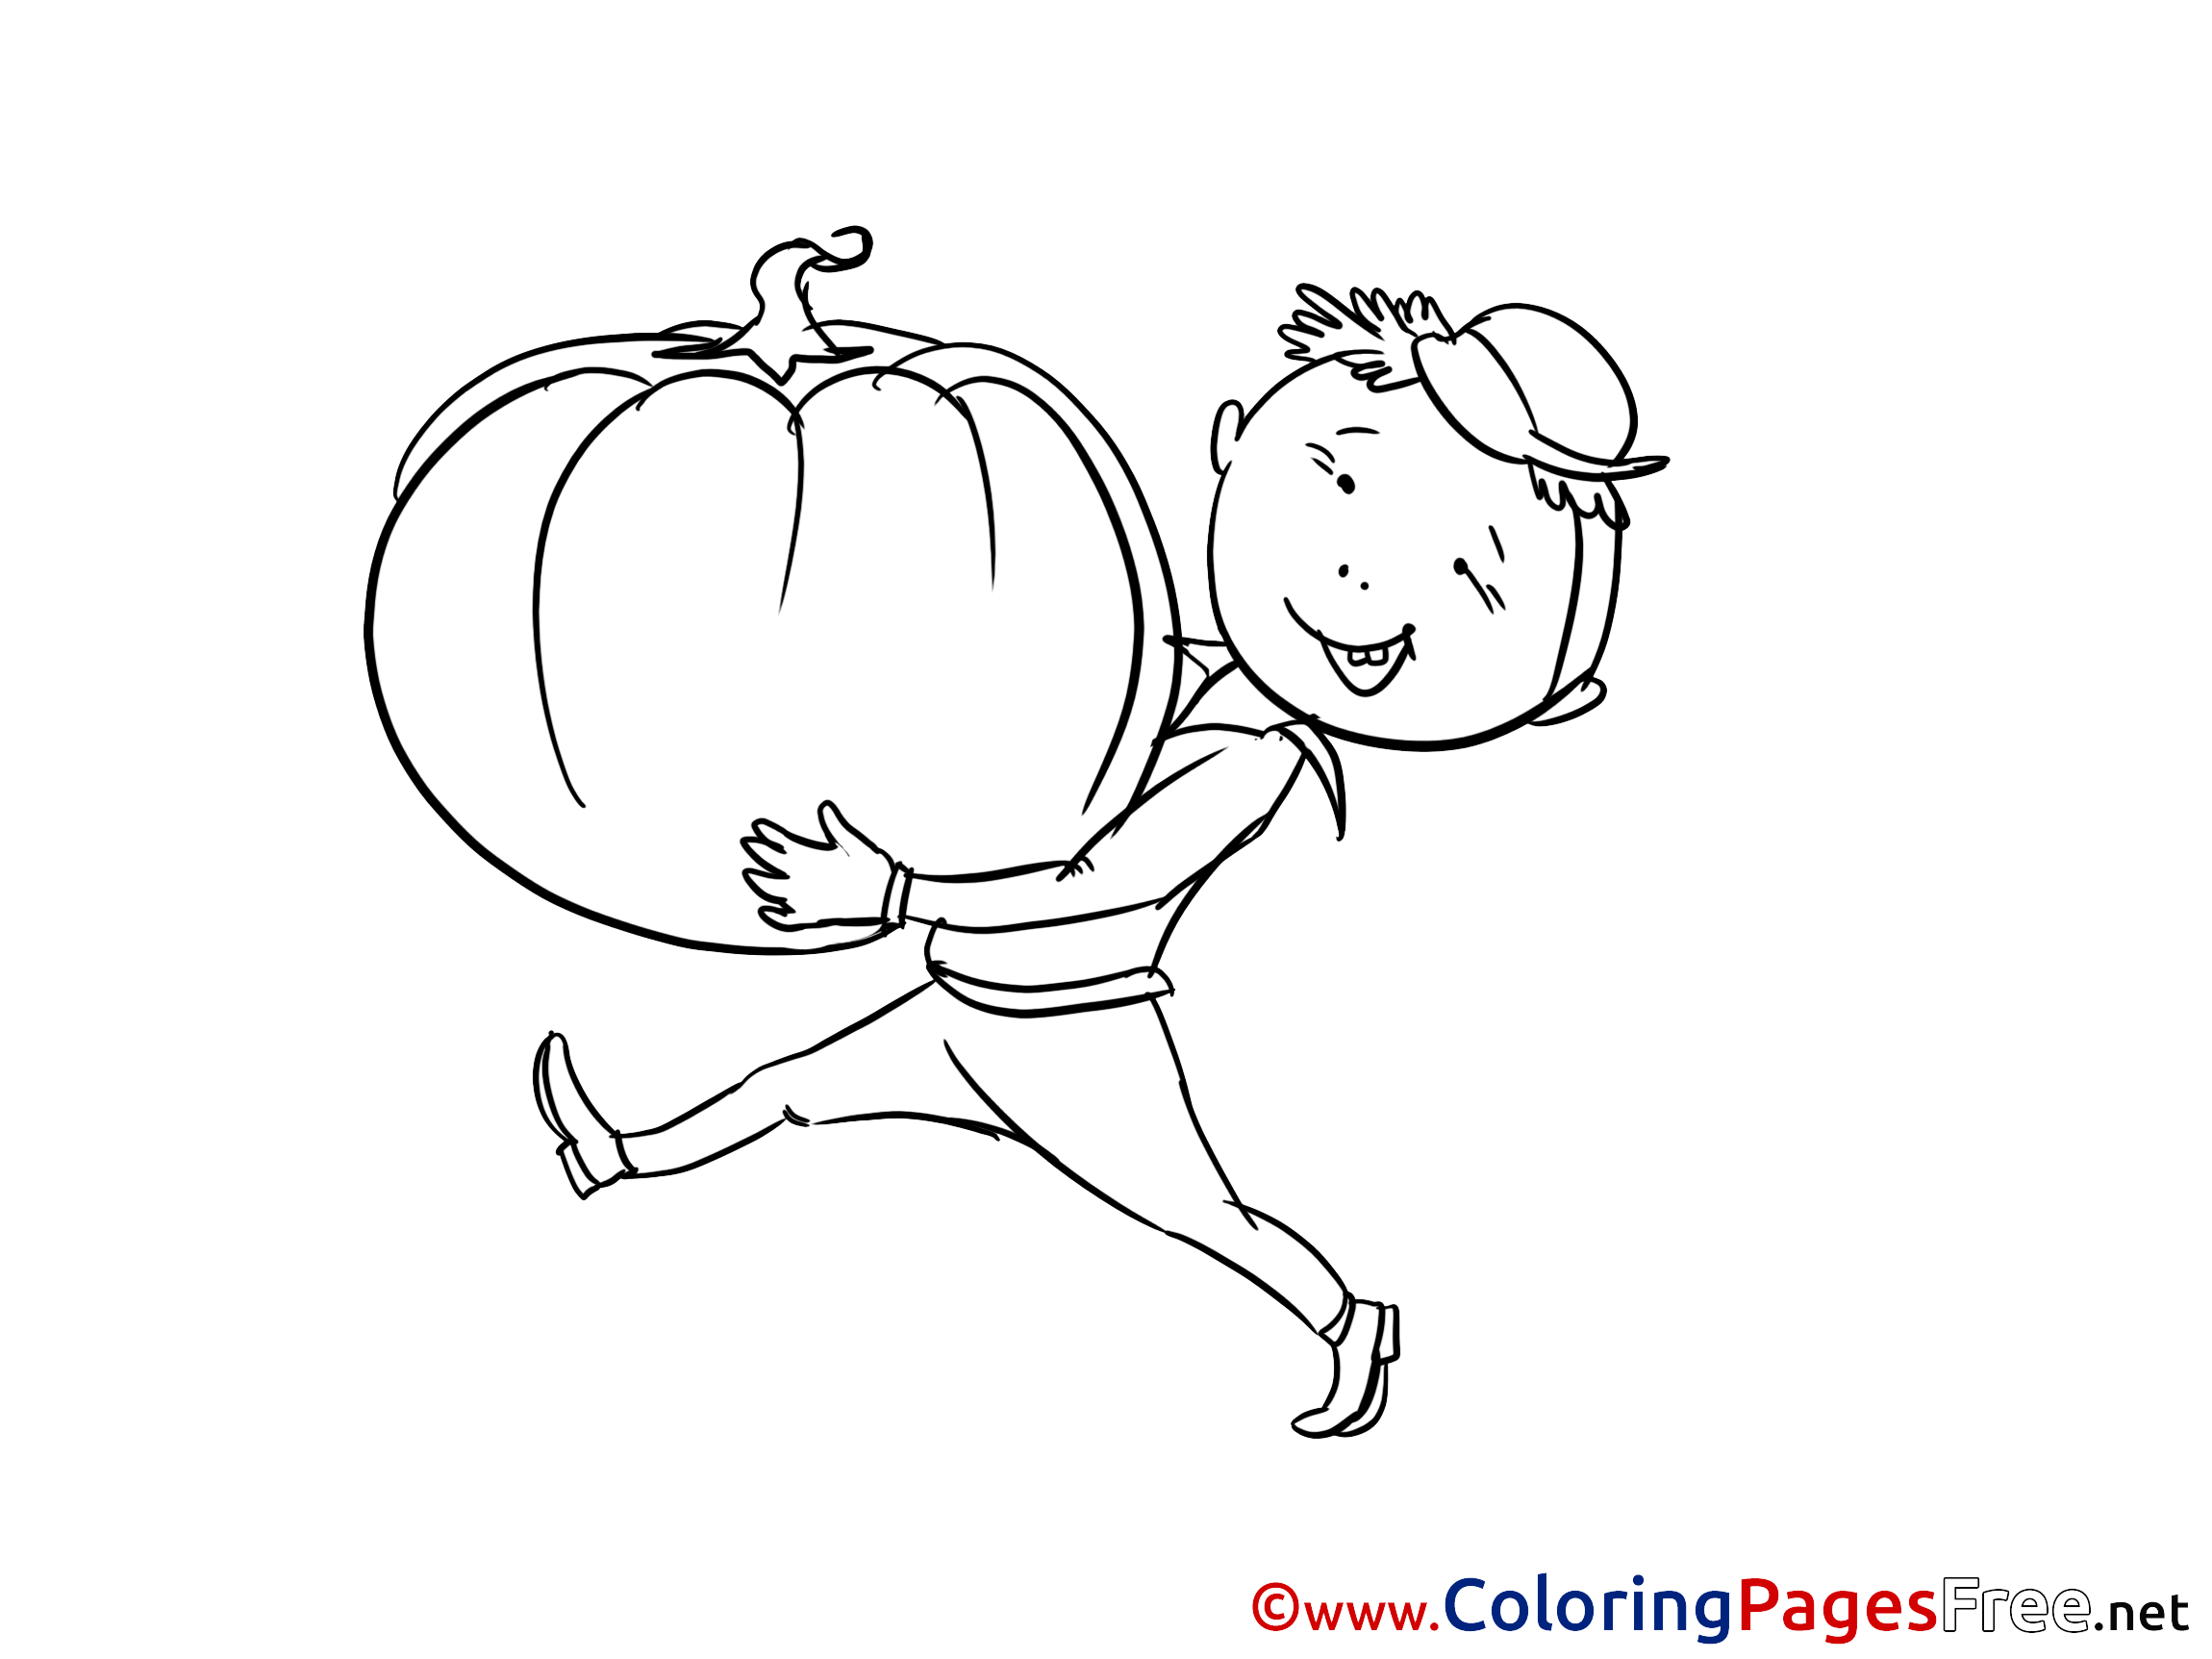 Boy with Pumpkin Coloring Sheets